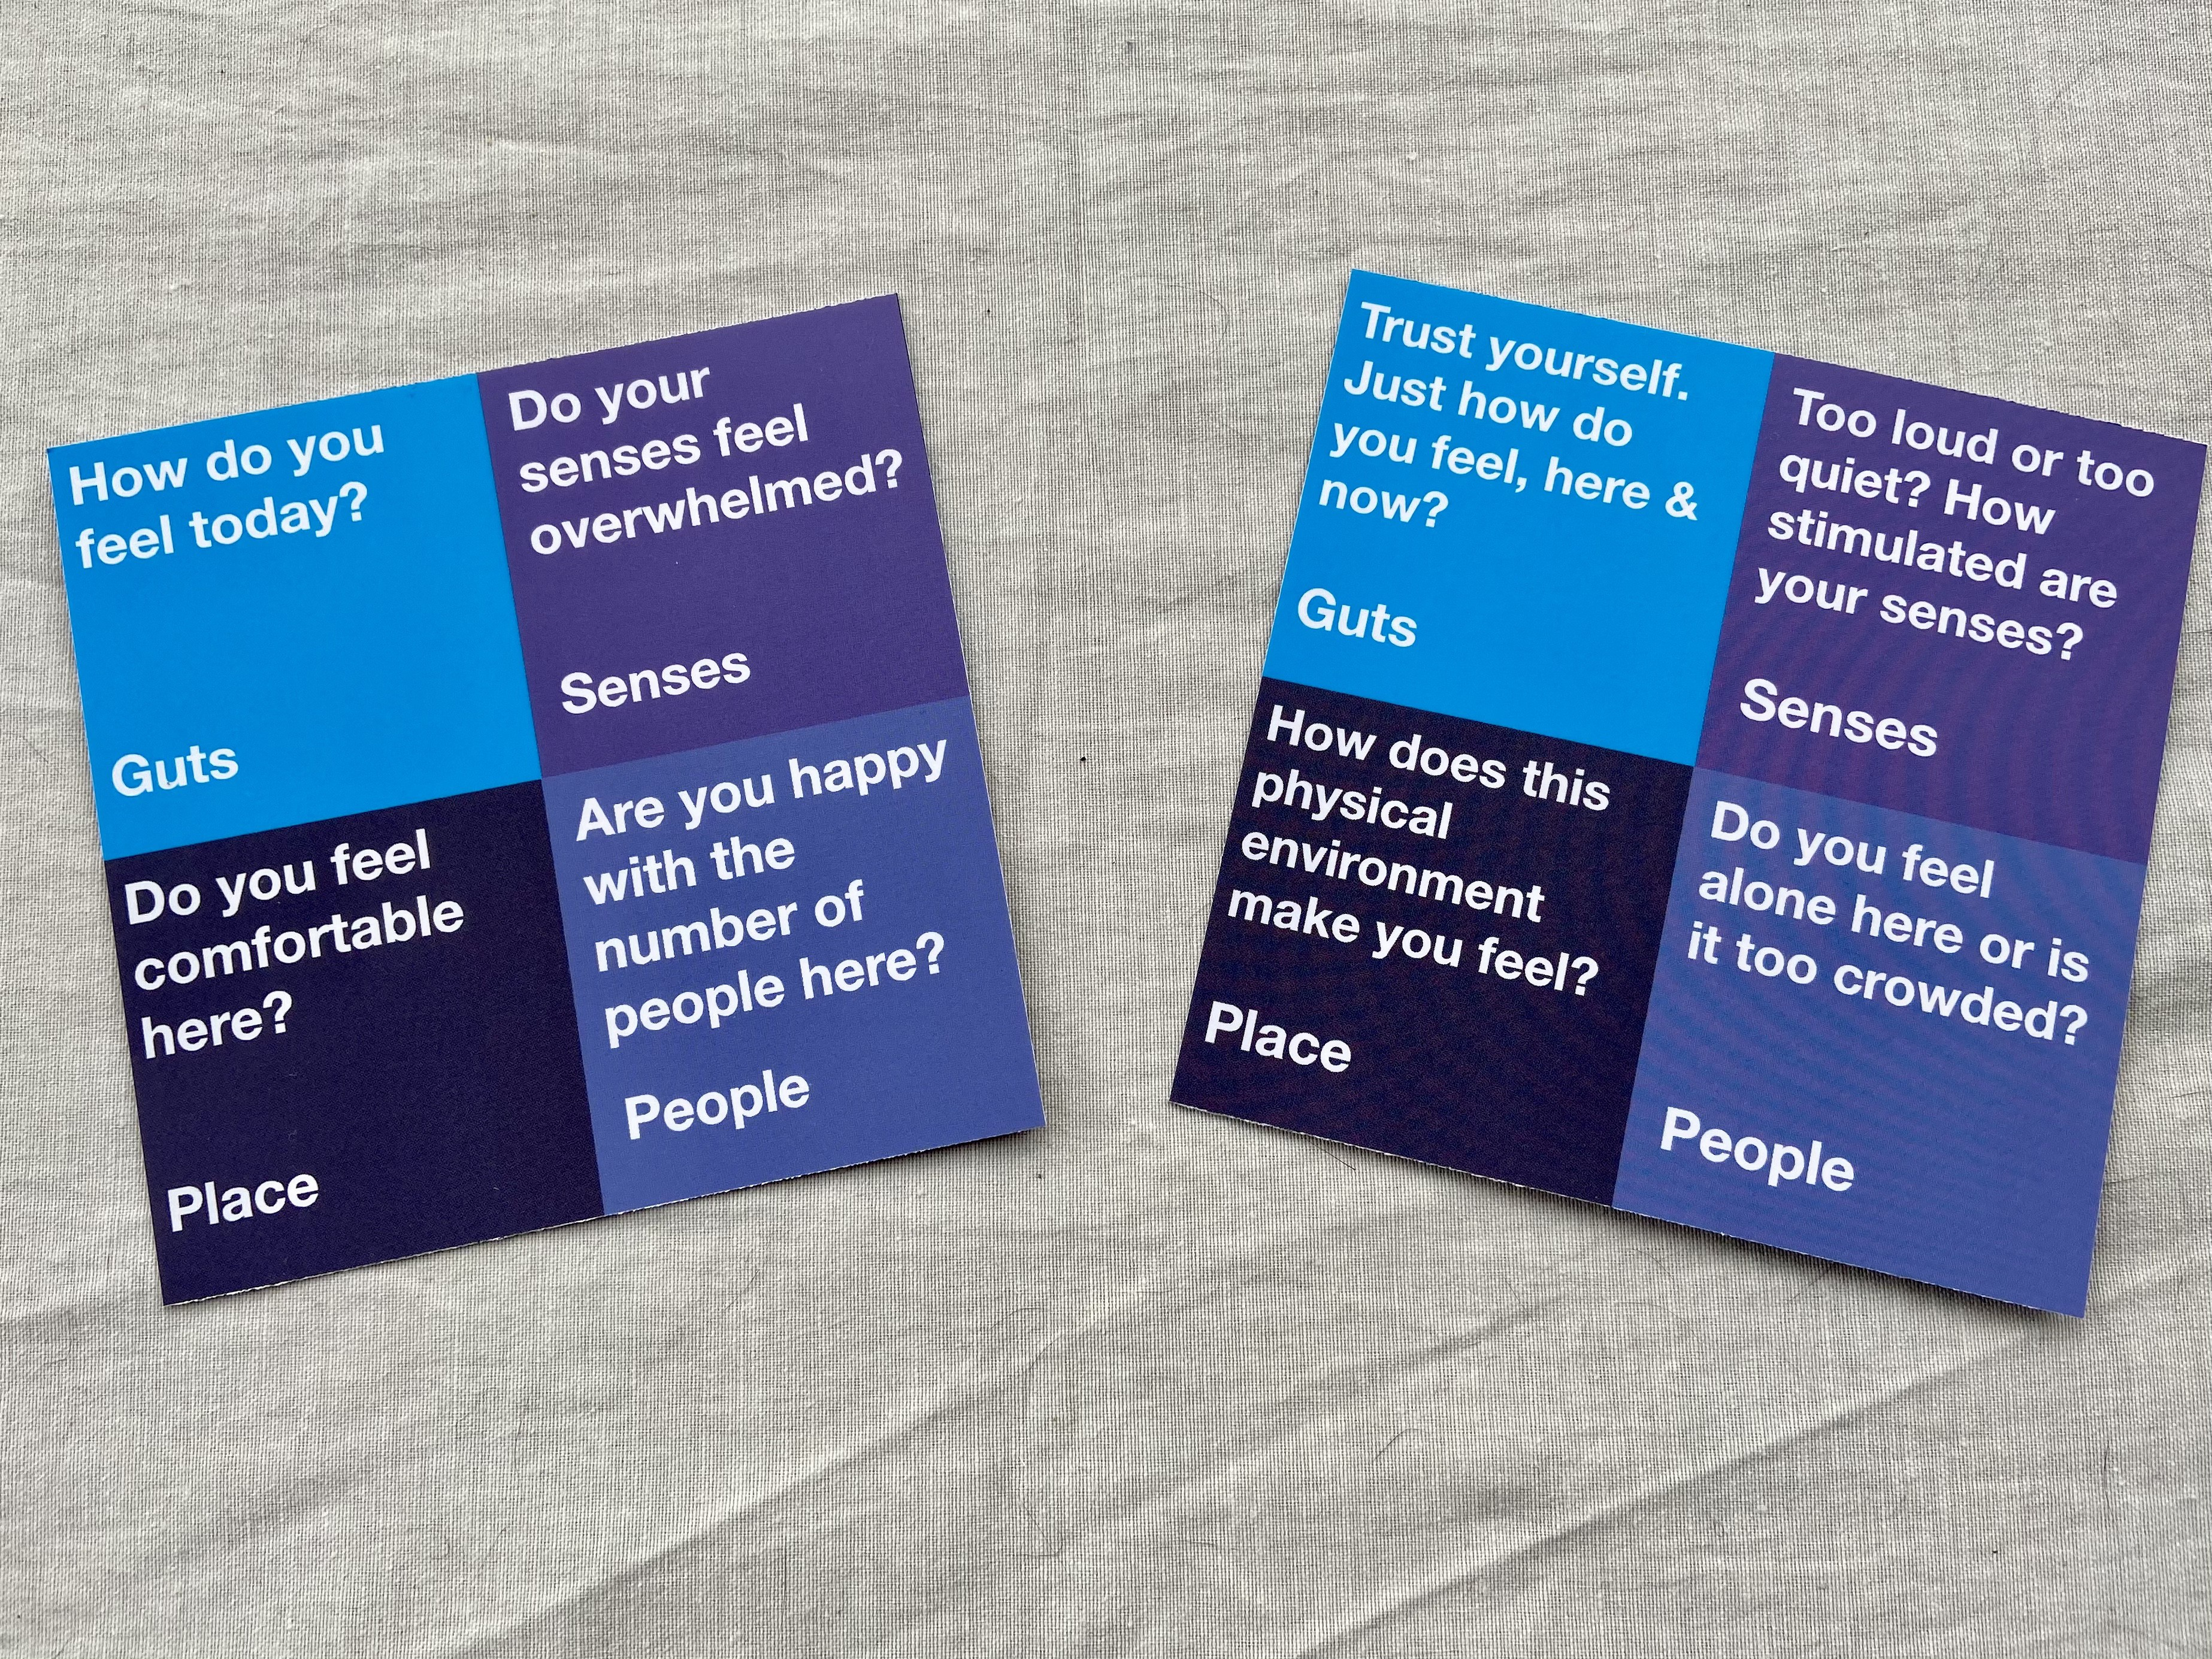 two sides of card with questions about personal sense of comfort — physically, technically, socially and emotionally